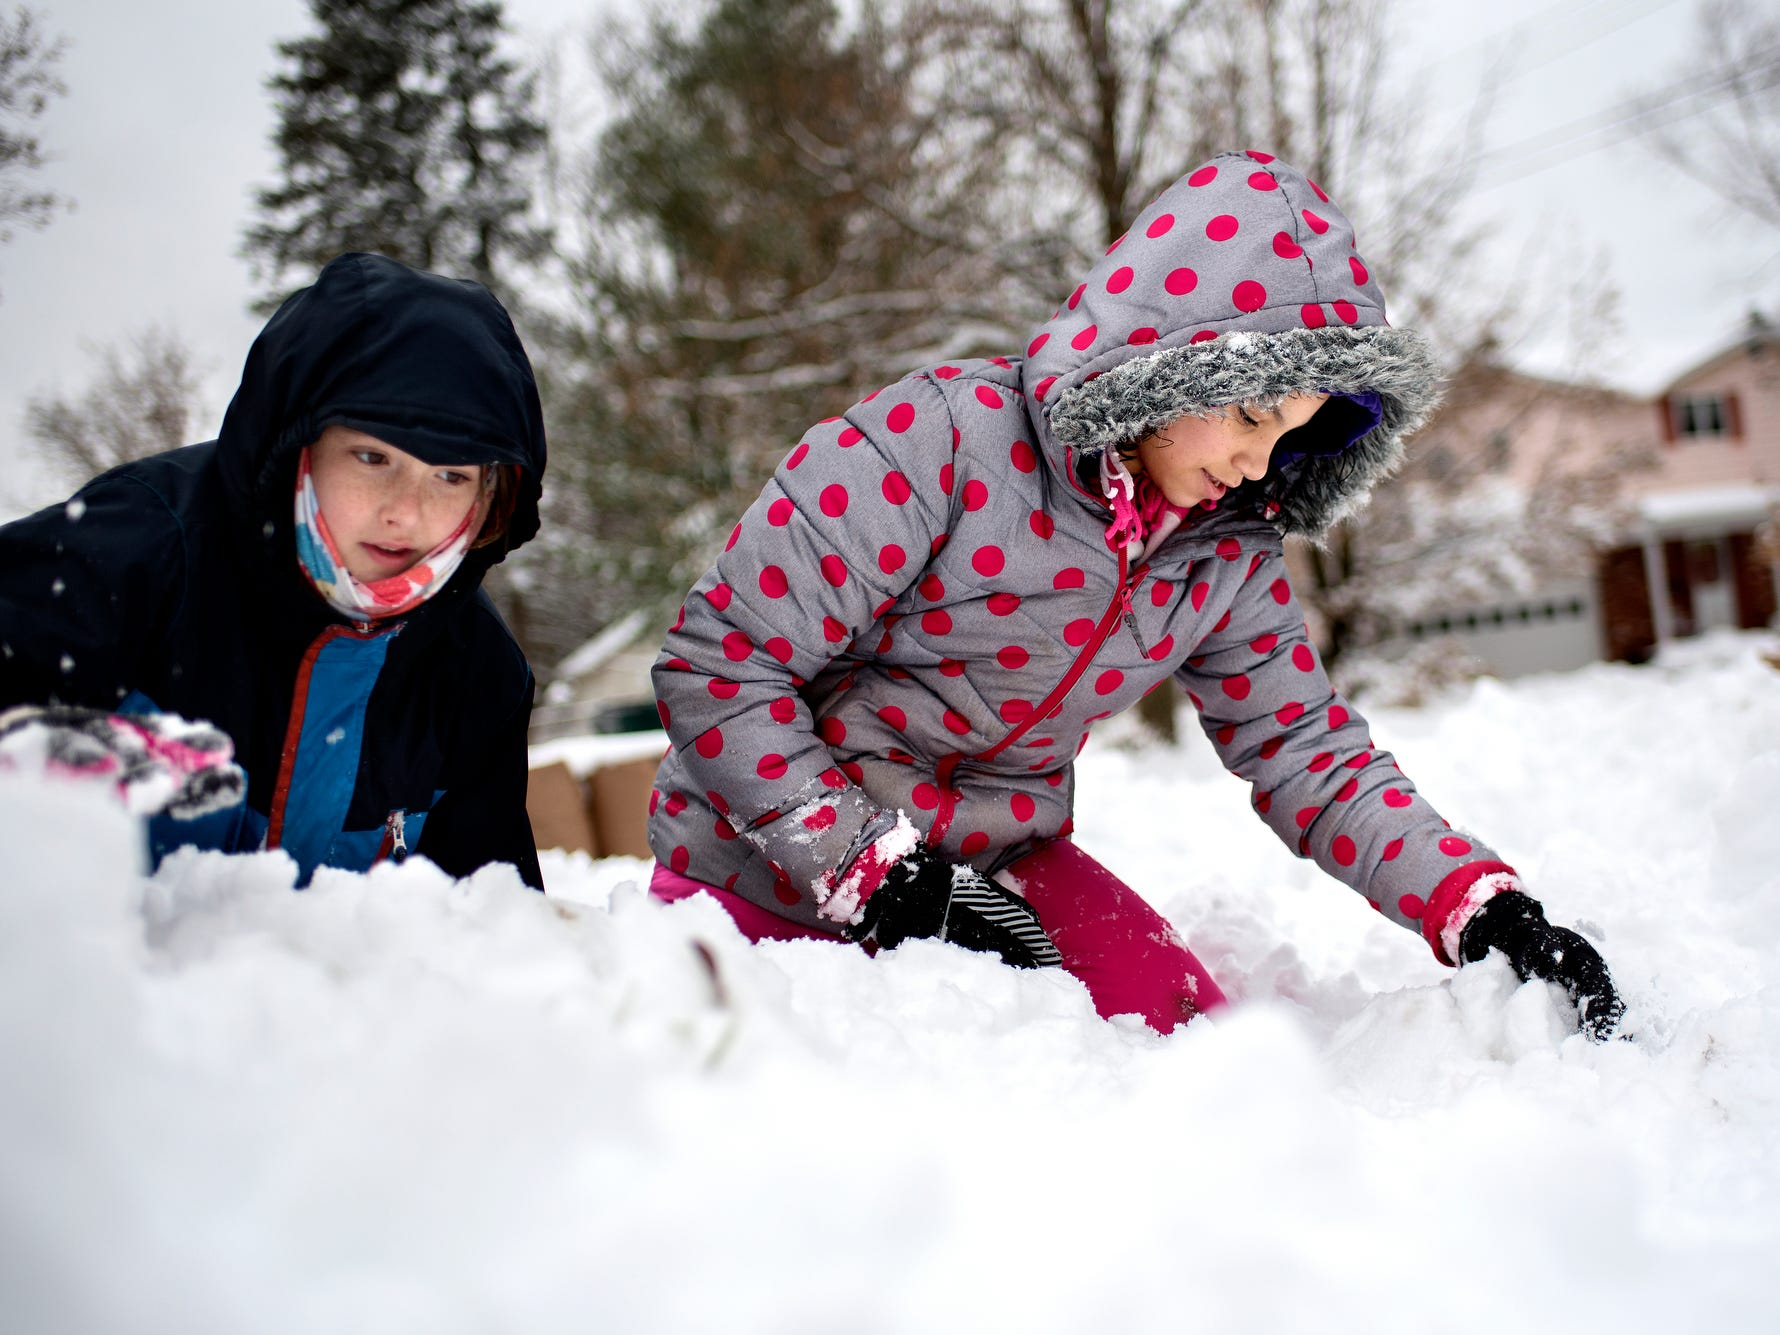 Zadie Denies, 10, left, and neighborhood friend Tyanna Morgan, 11, build a fort in Denies' yard on Monday, Nov. 26, 2018, in Lansing. School was cancelled for the two girls.